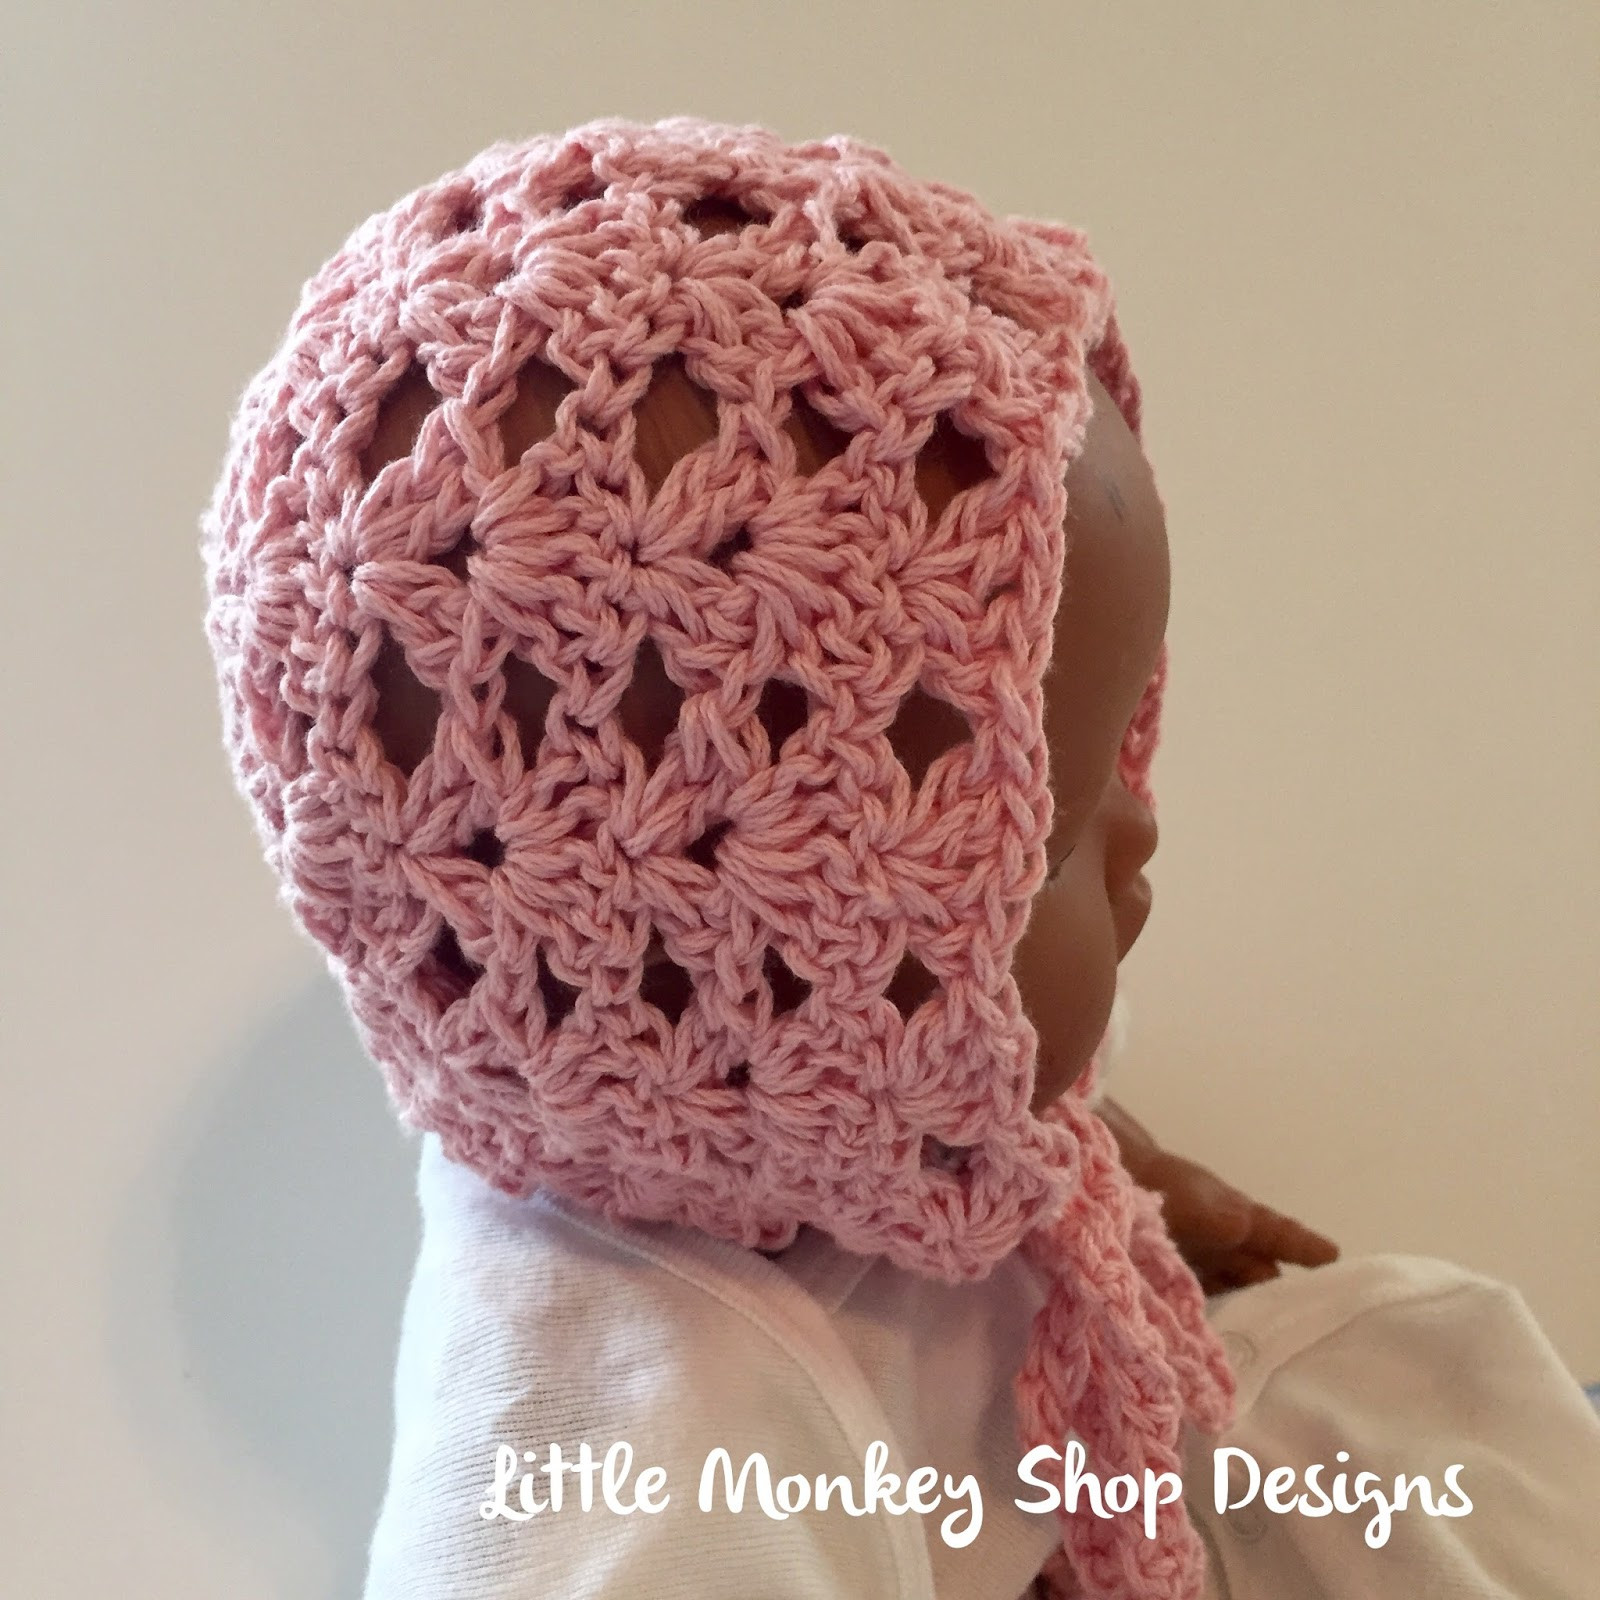 I Love This Cotton Yarn Crochet Patterns New Princess Charlotte Baby Bonnet Crochet Pattern In organic Of Delightful 43 Ideas I Love This Cotton Yarn Crochet Patterns